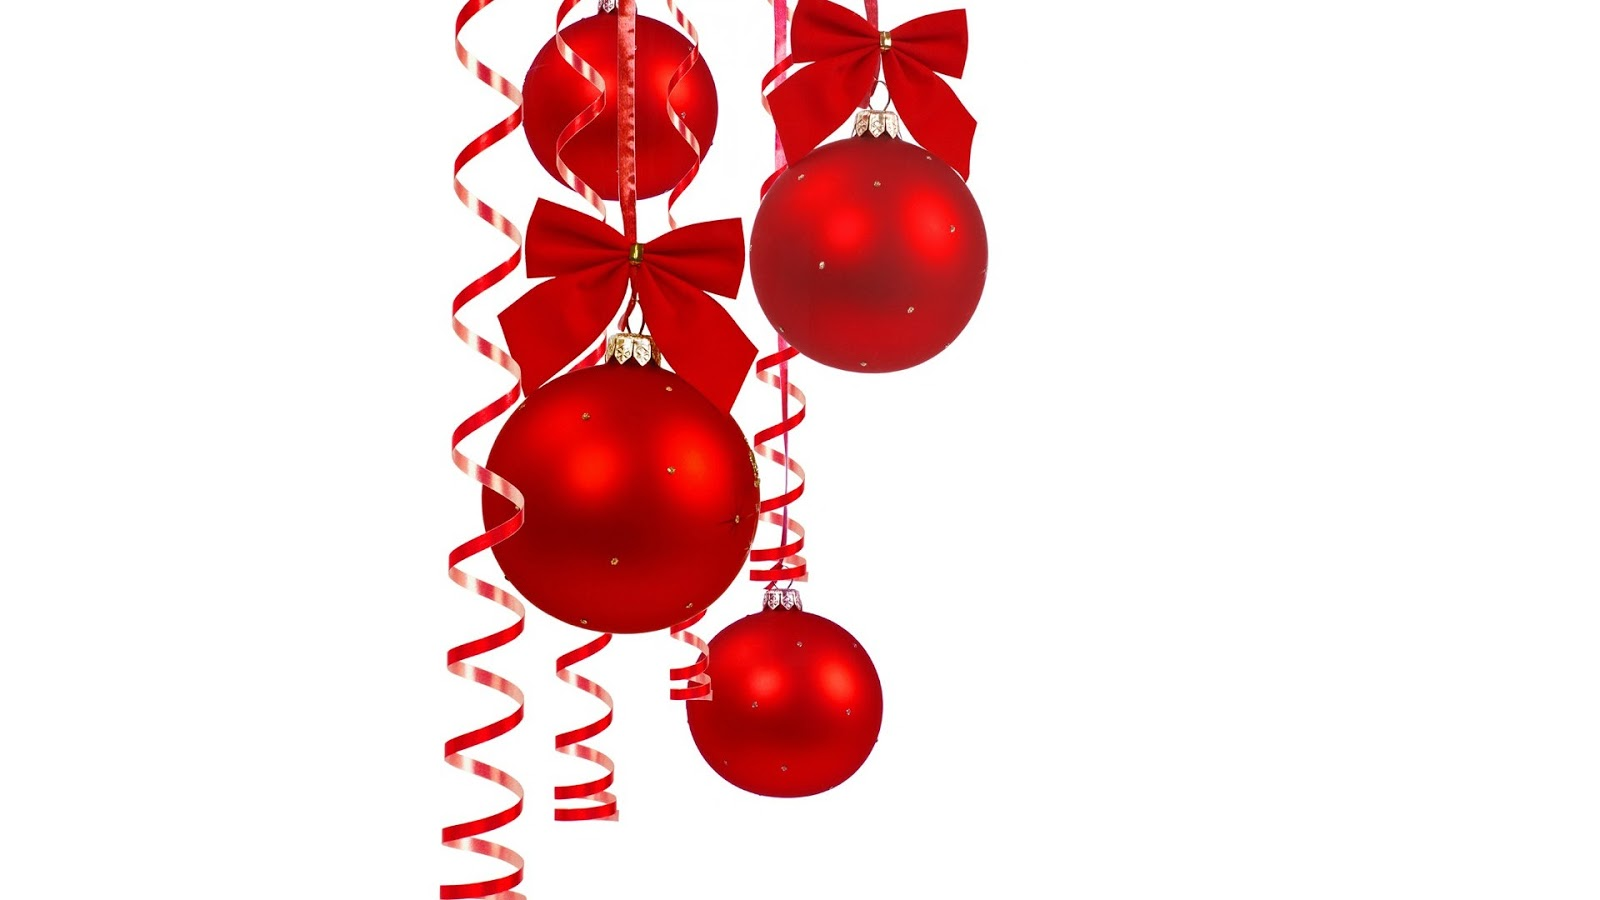 Free Christmas Ornament Images, Download Free Clip Art, Free.